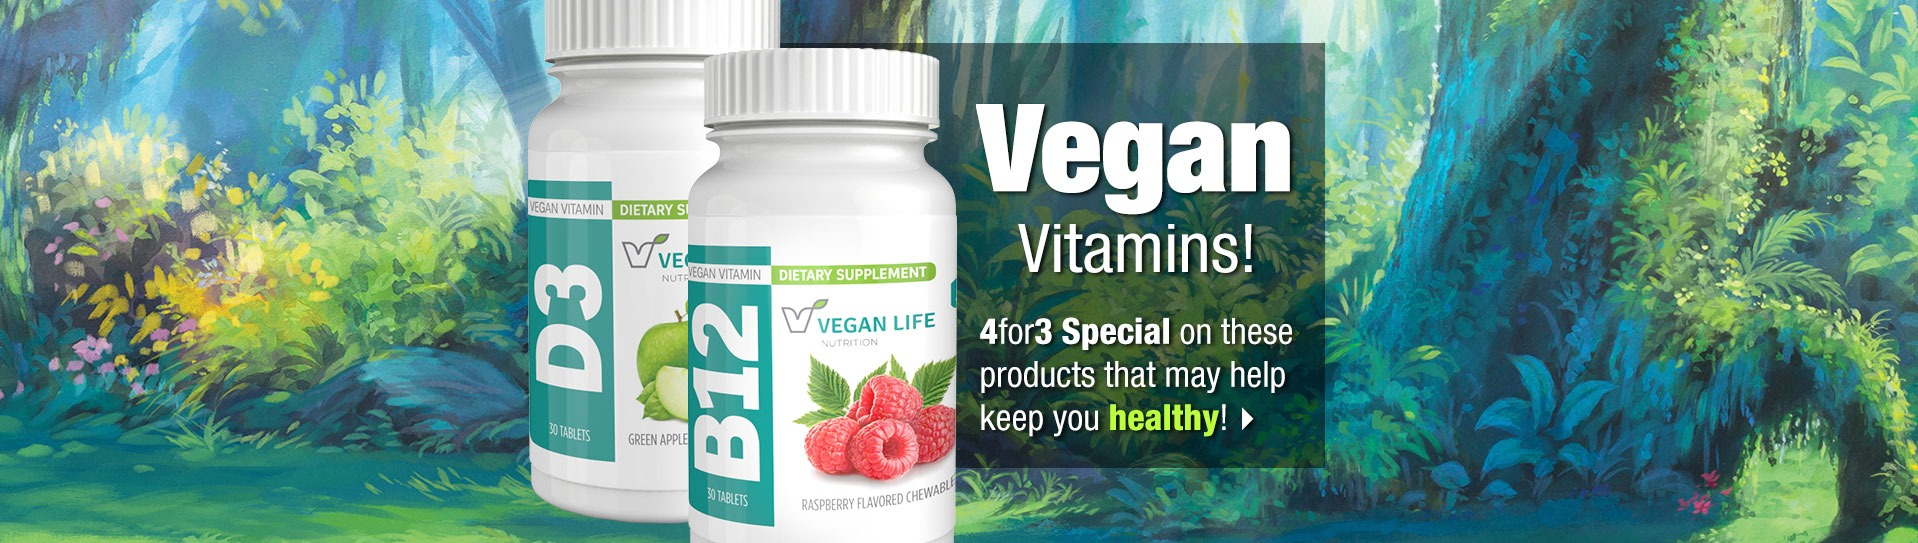 "Slide - Vegan Vitamins! ""Get 1 FREE when you buy 3!"" offer."